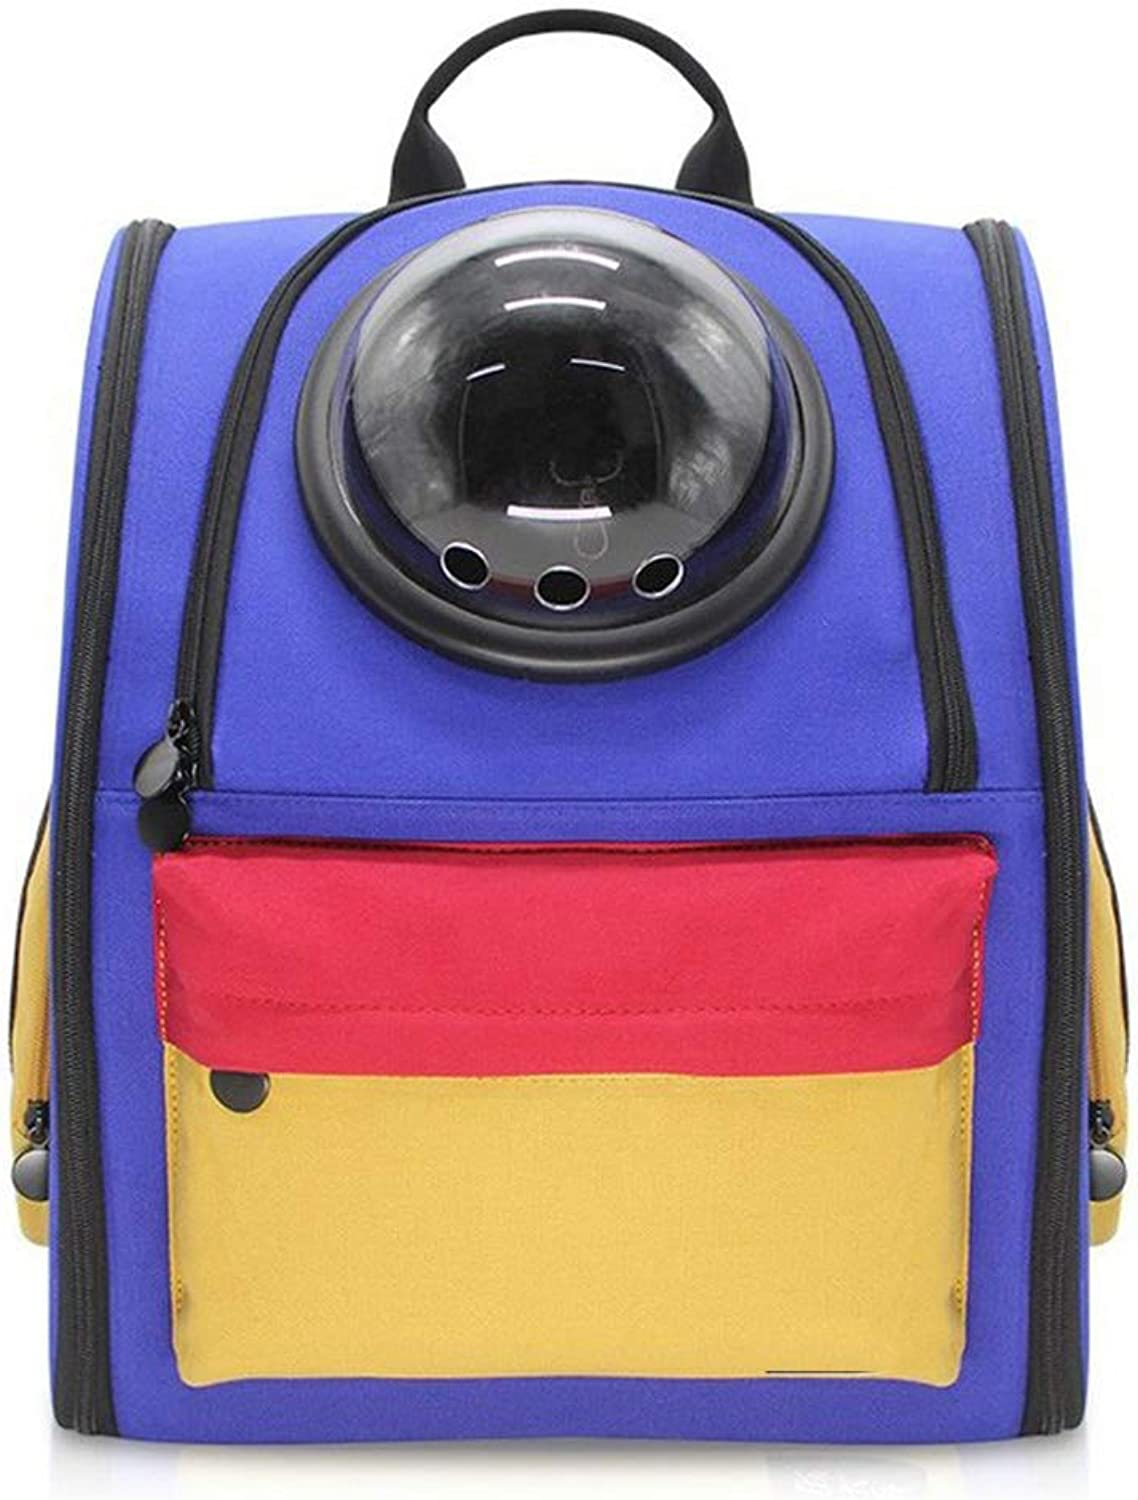 DYYTR Pet Transport Backpack For Cat Puppy For Travel Outdoor Activity Pet Transport Backpack Breathable Transparent Space Capsule Pet Carrier Backpack